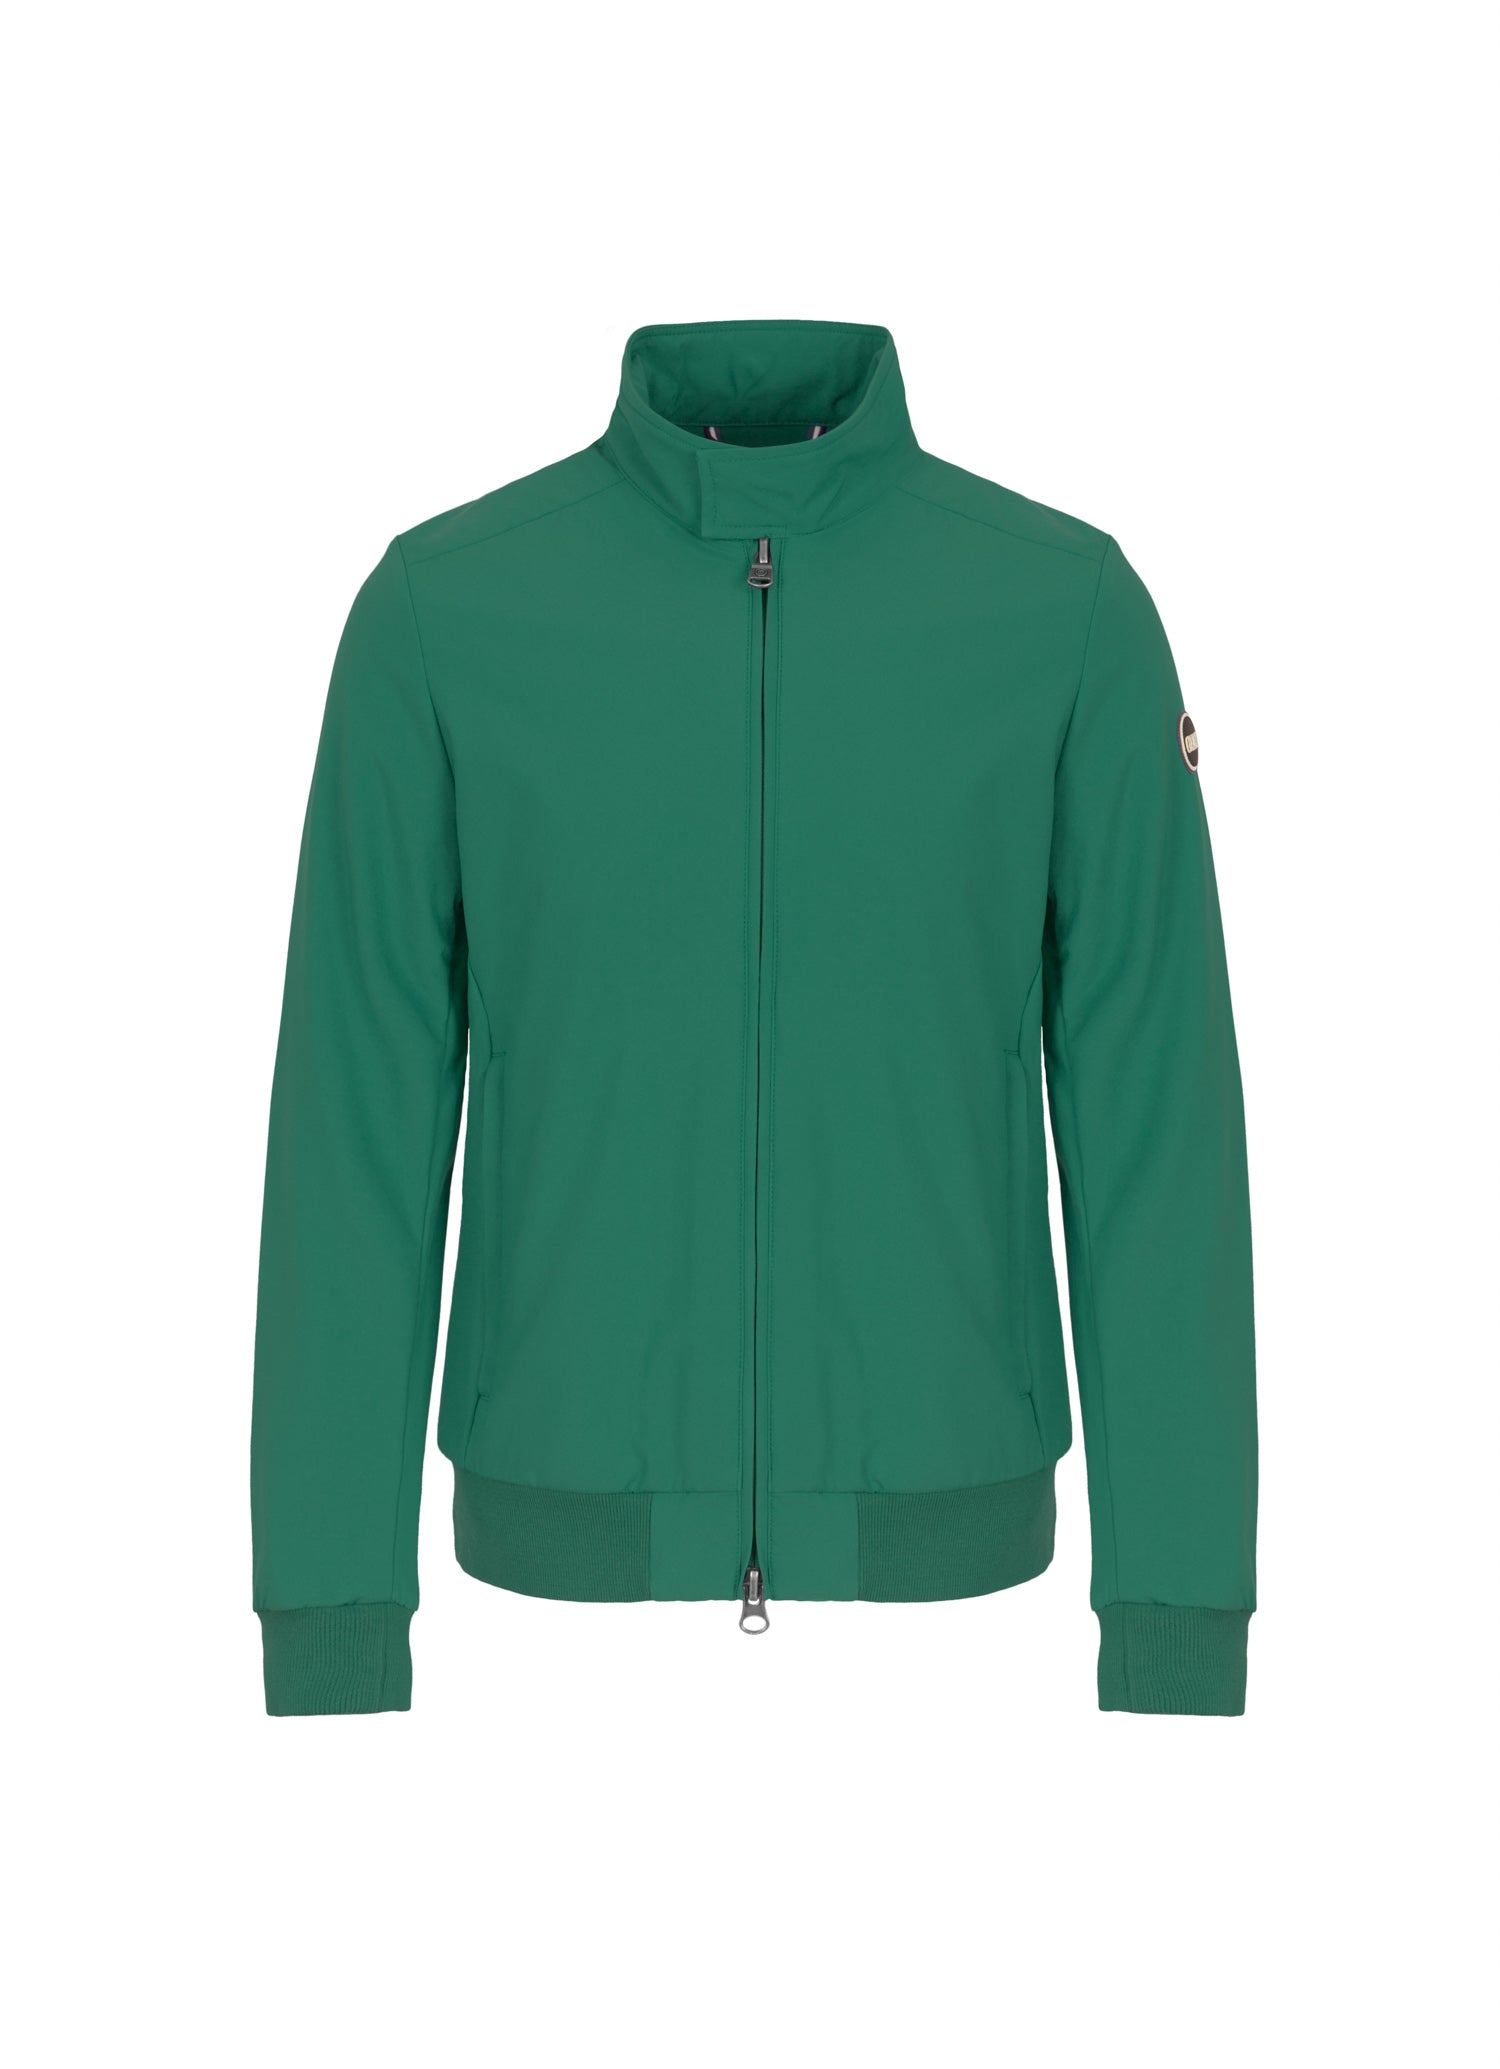 Colmar Green Biker Jacket